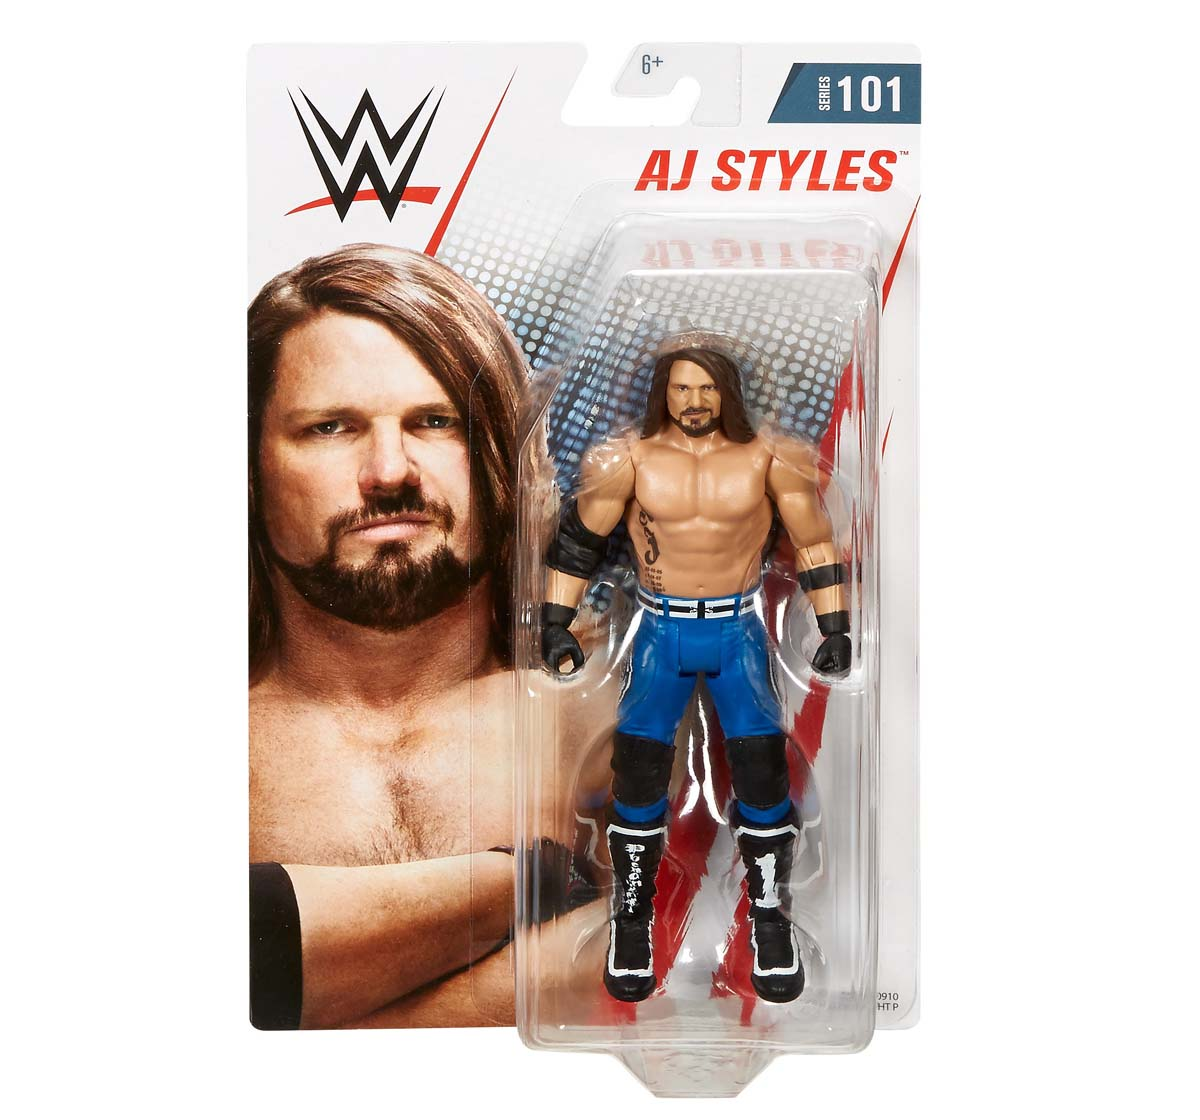 Wwe   Wwe Basic Action Figures for Kids Age 6Y+